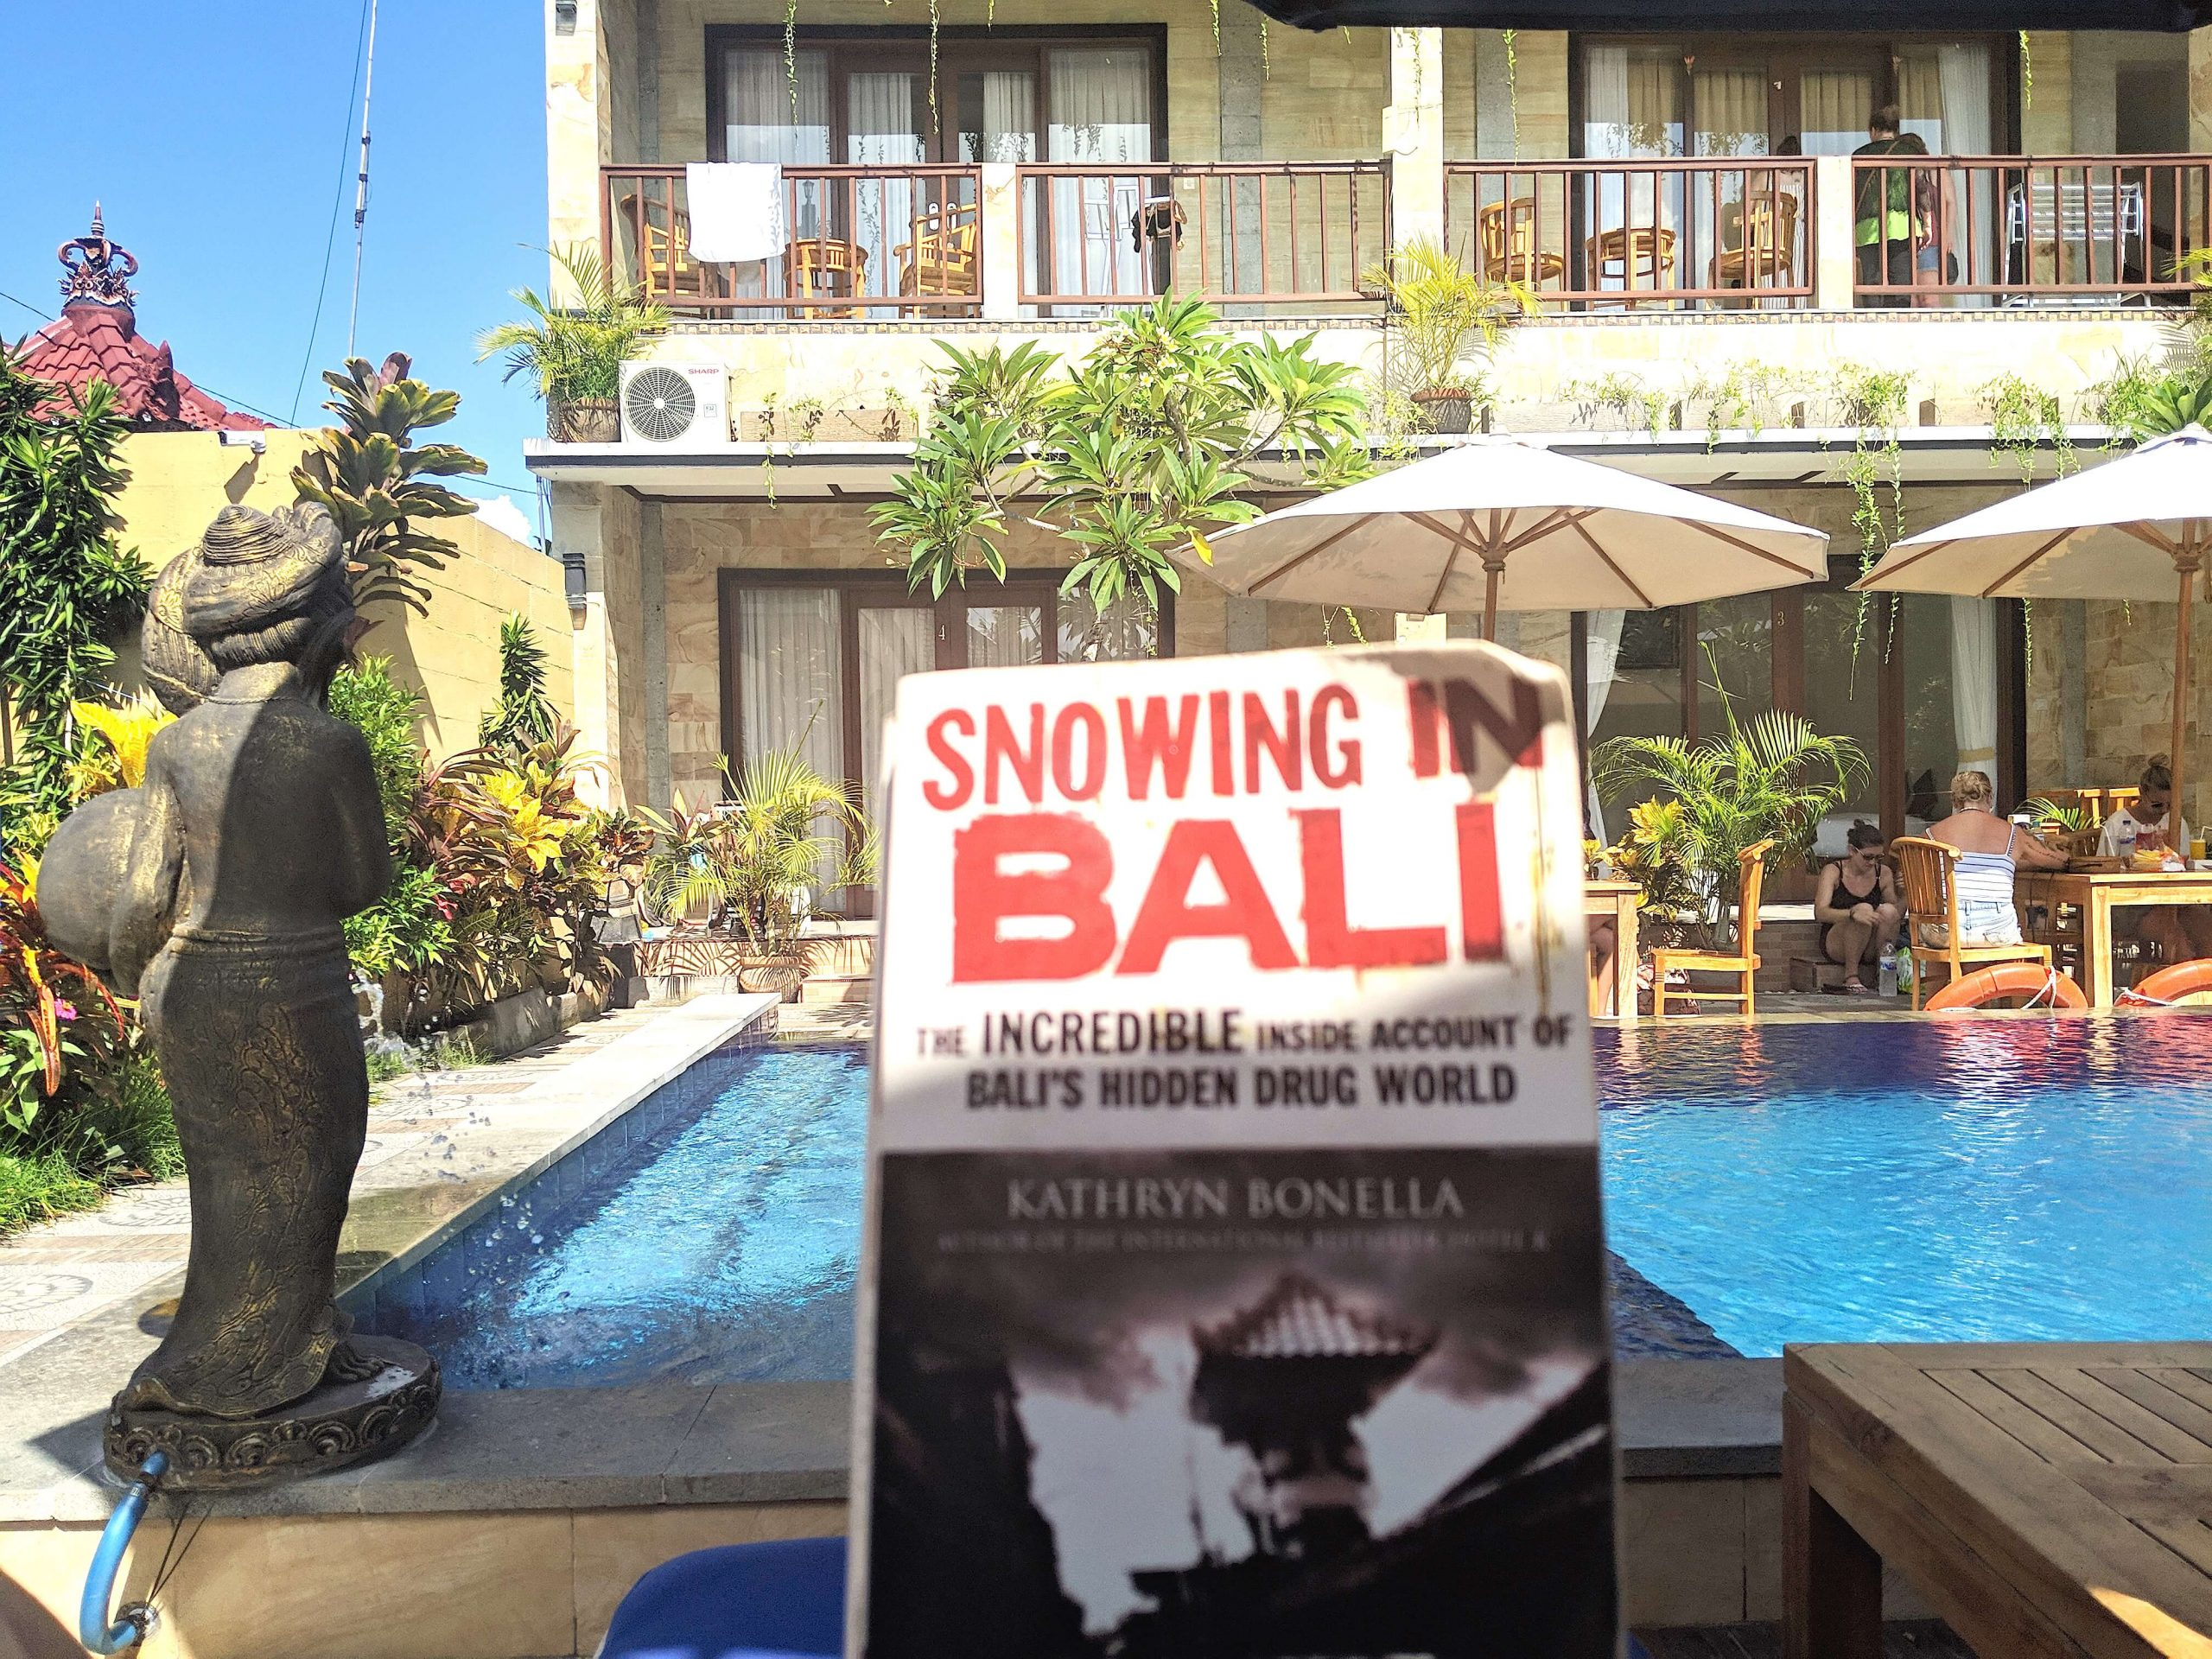 Sat reading Snowing in Bali by the pool - just 1 of the awesome books I read in 2019